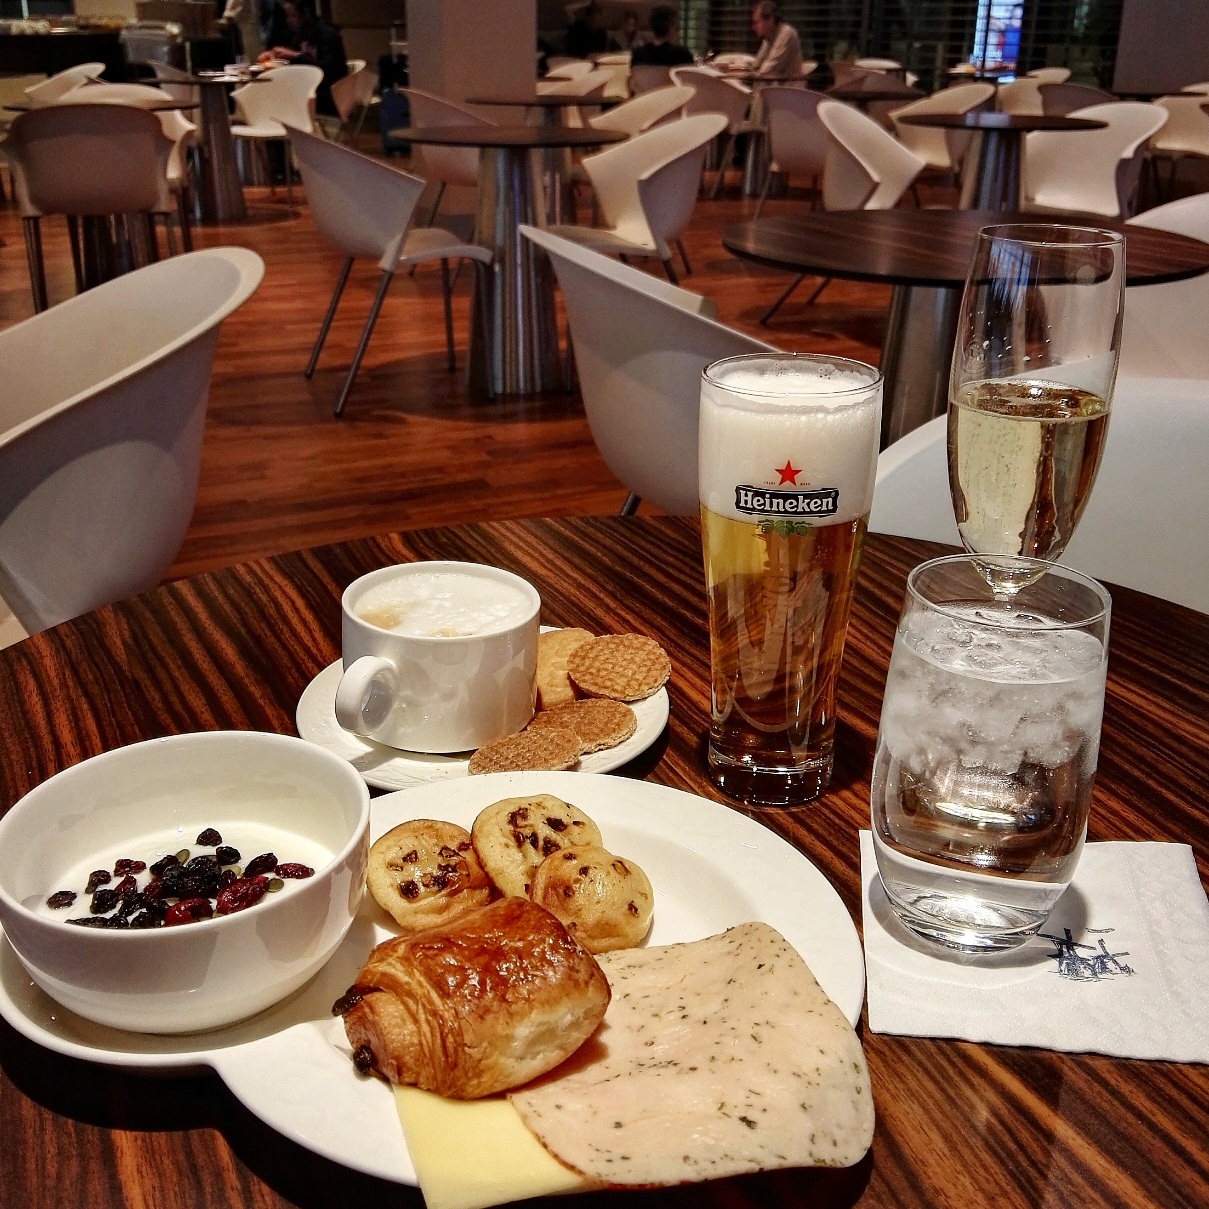 Dutch breakfast at KLM Crown Lounge at Amsterdam Schiphol Airport